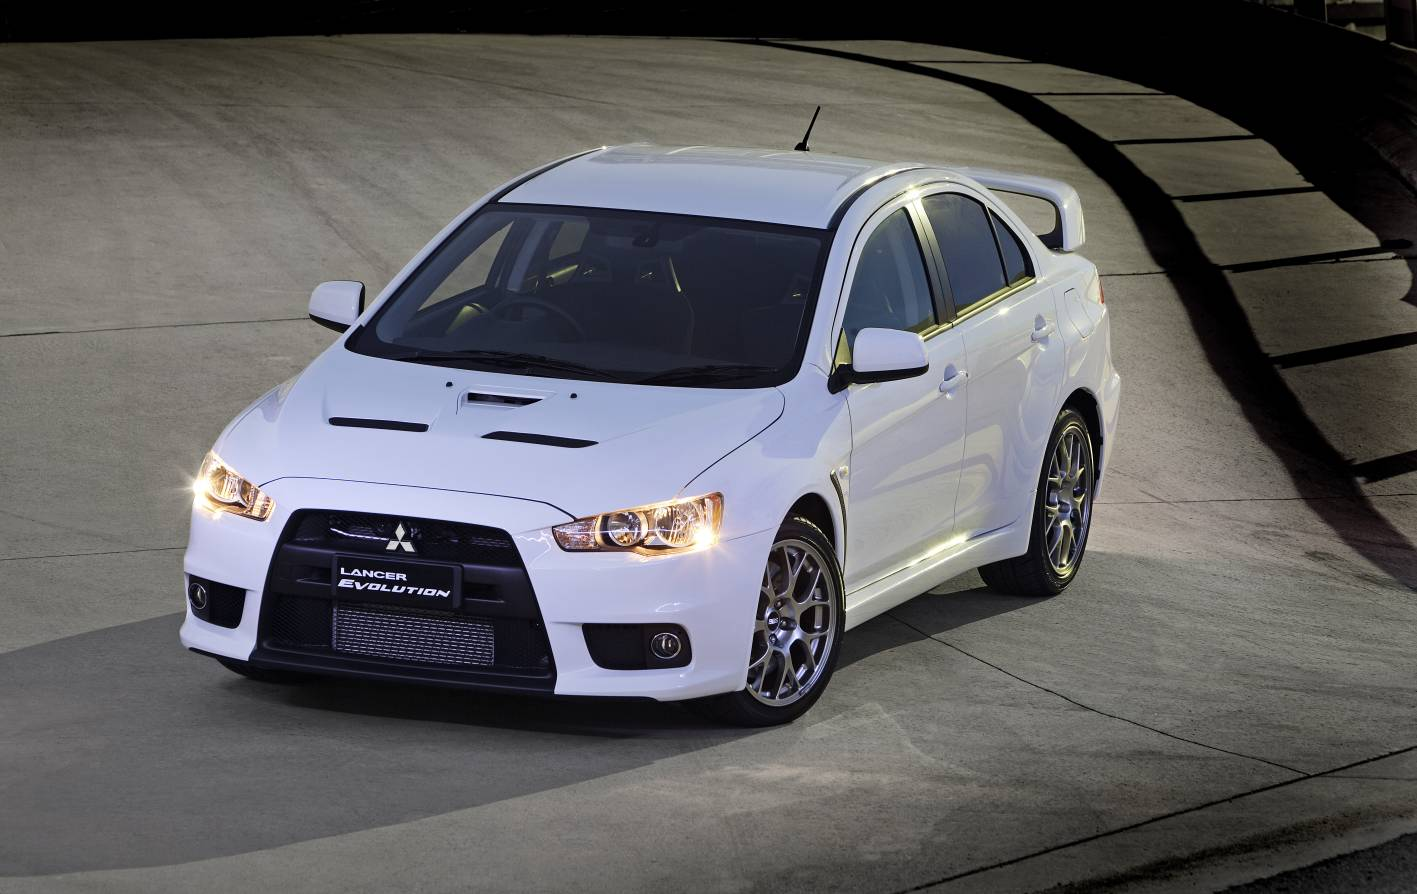 Test Driving The Mitsubishi Evolution X